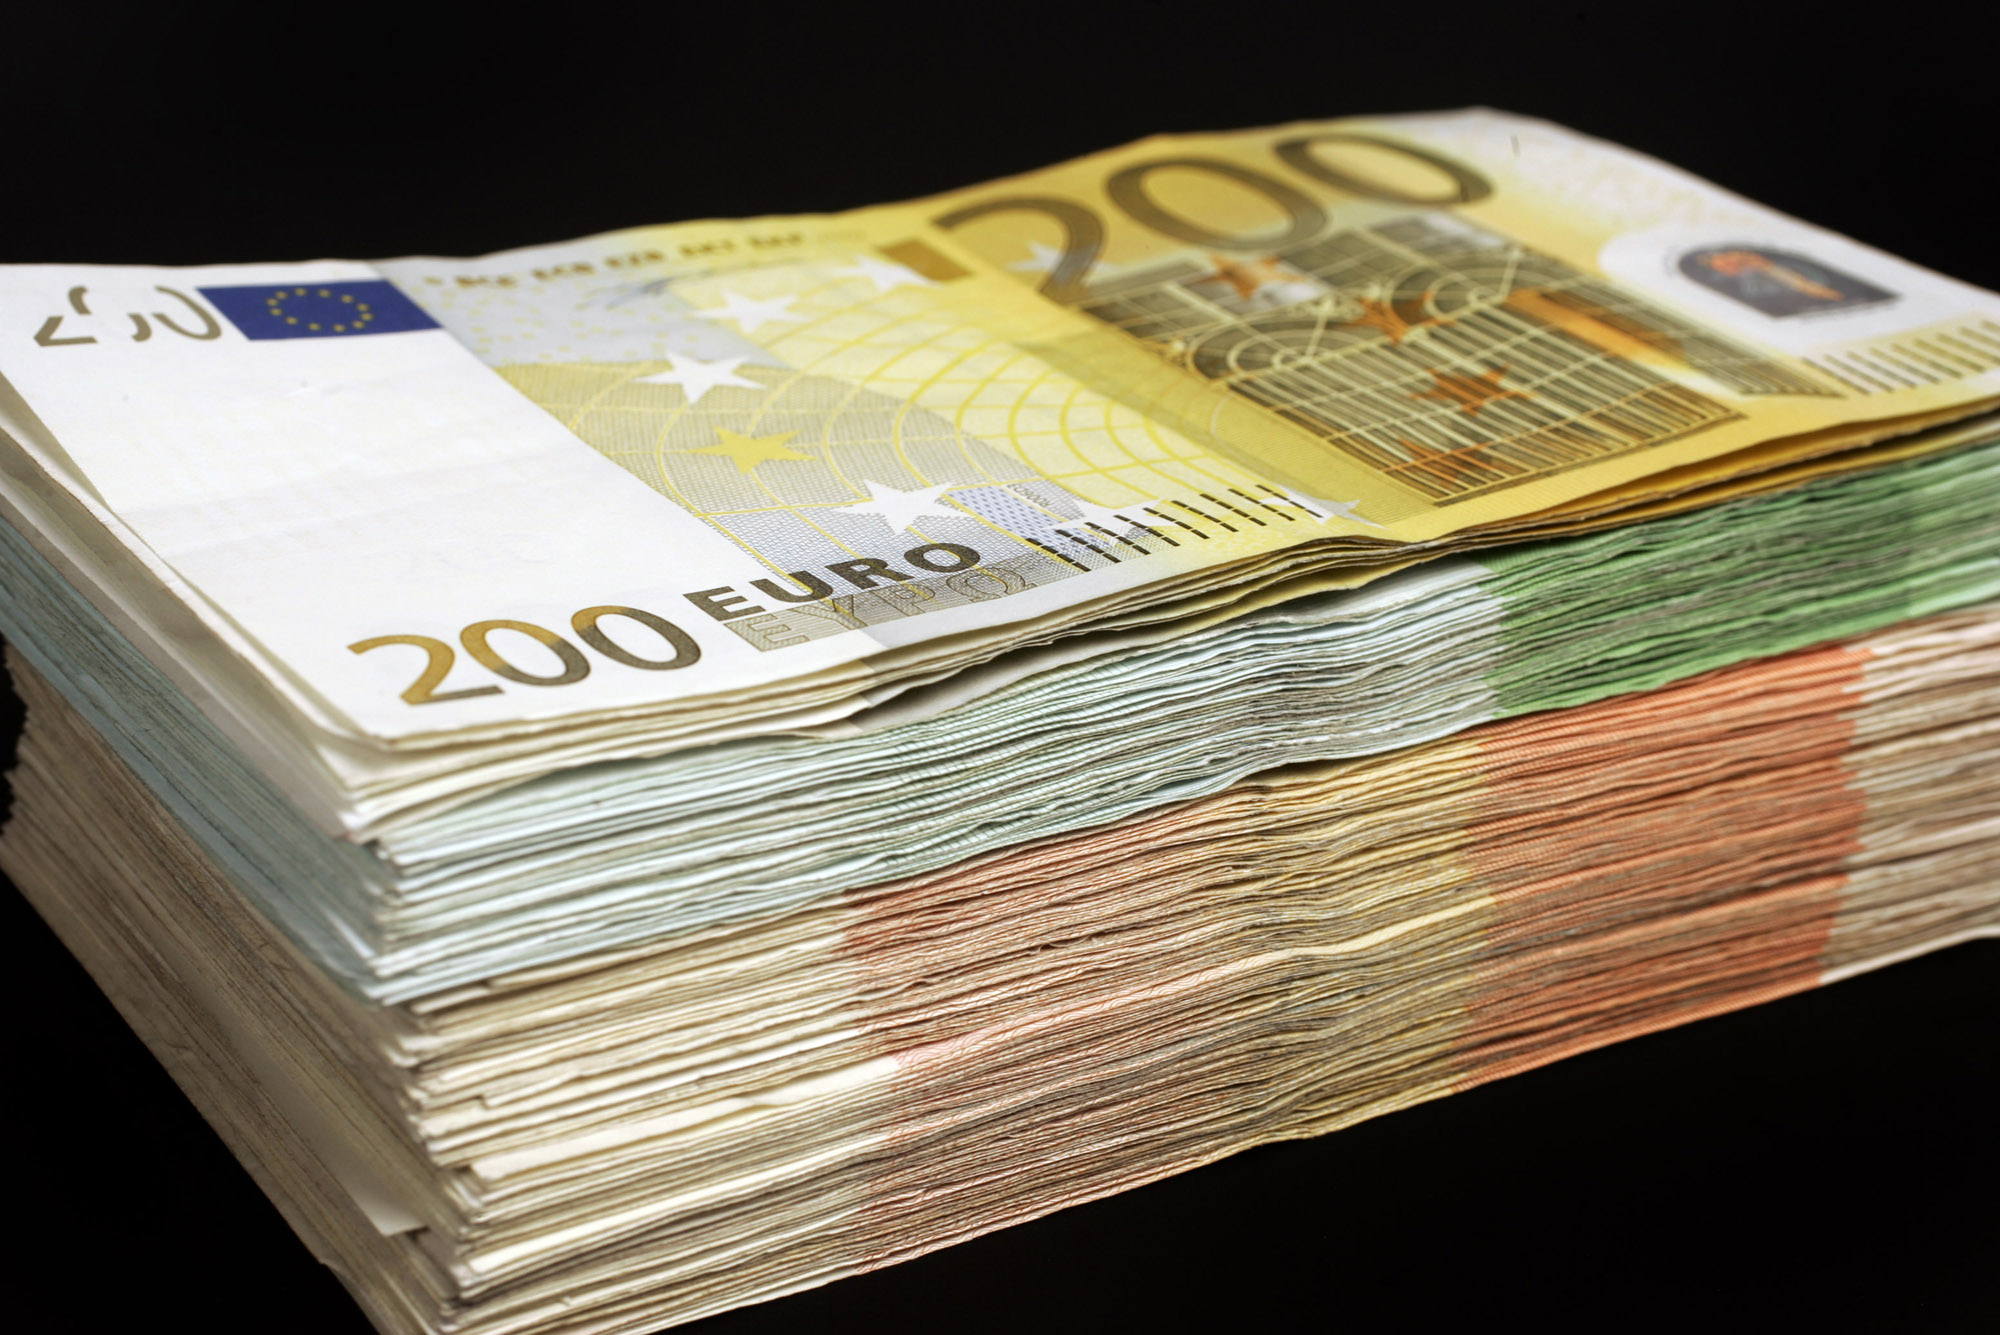 geld, money, euro, stapel, bankbiljet, banknote, contant, cash, flappen, zwartgeld, valuta, papiergeld, briefgeld, bills